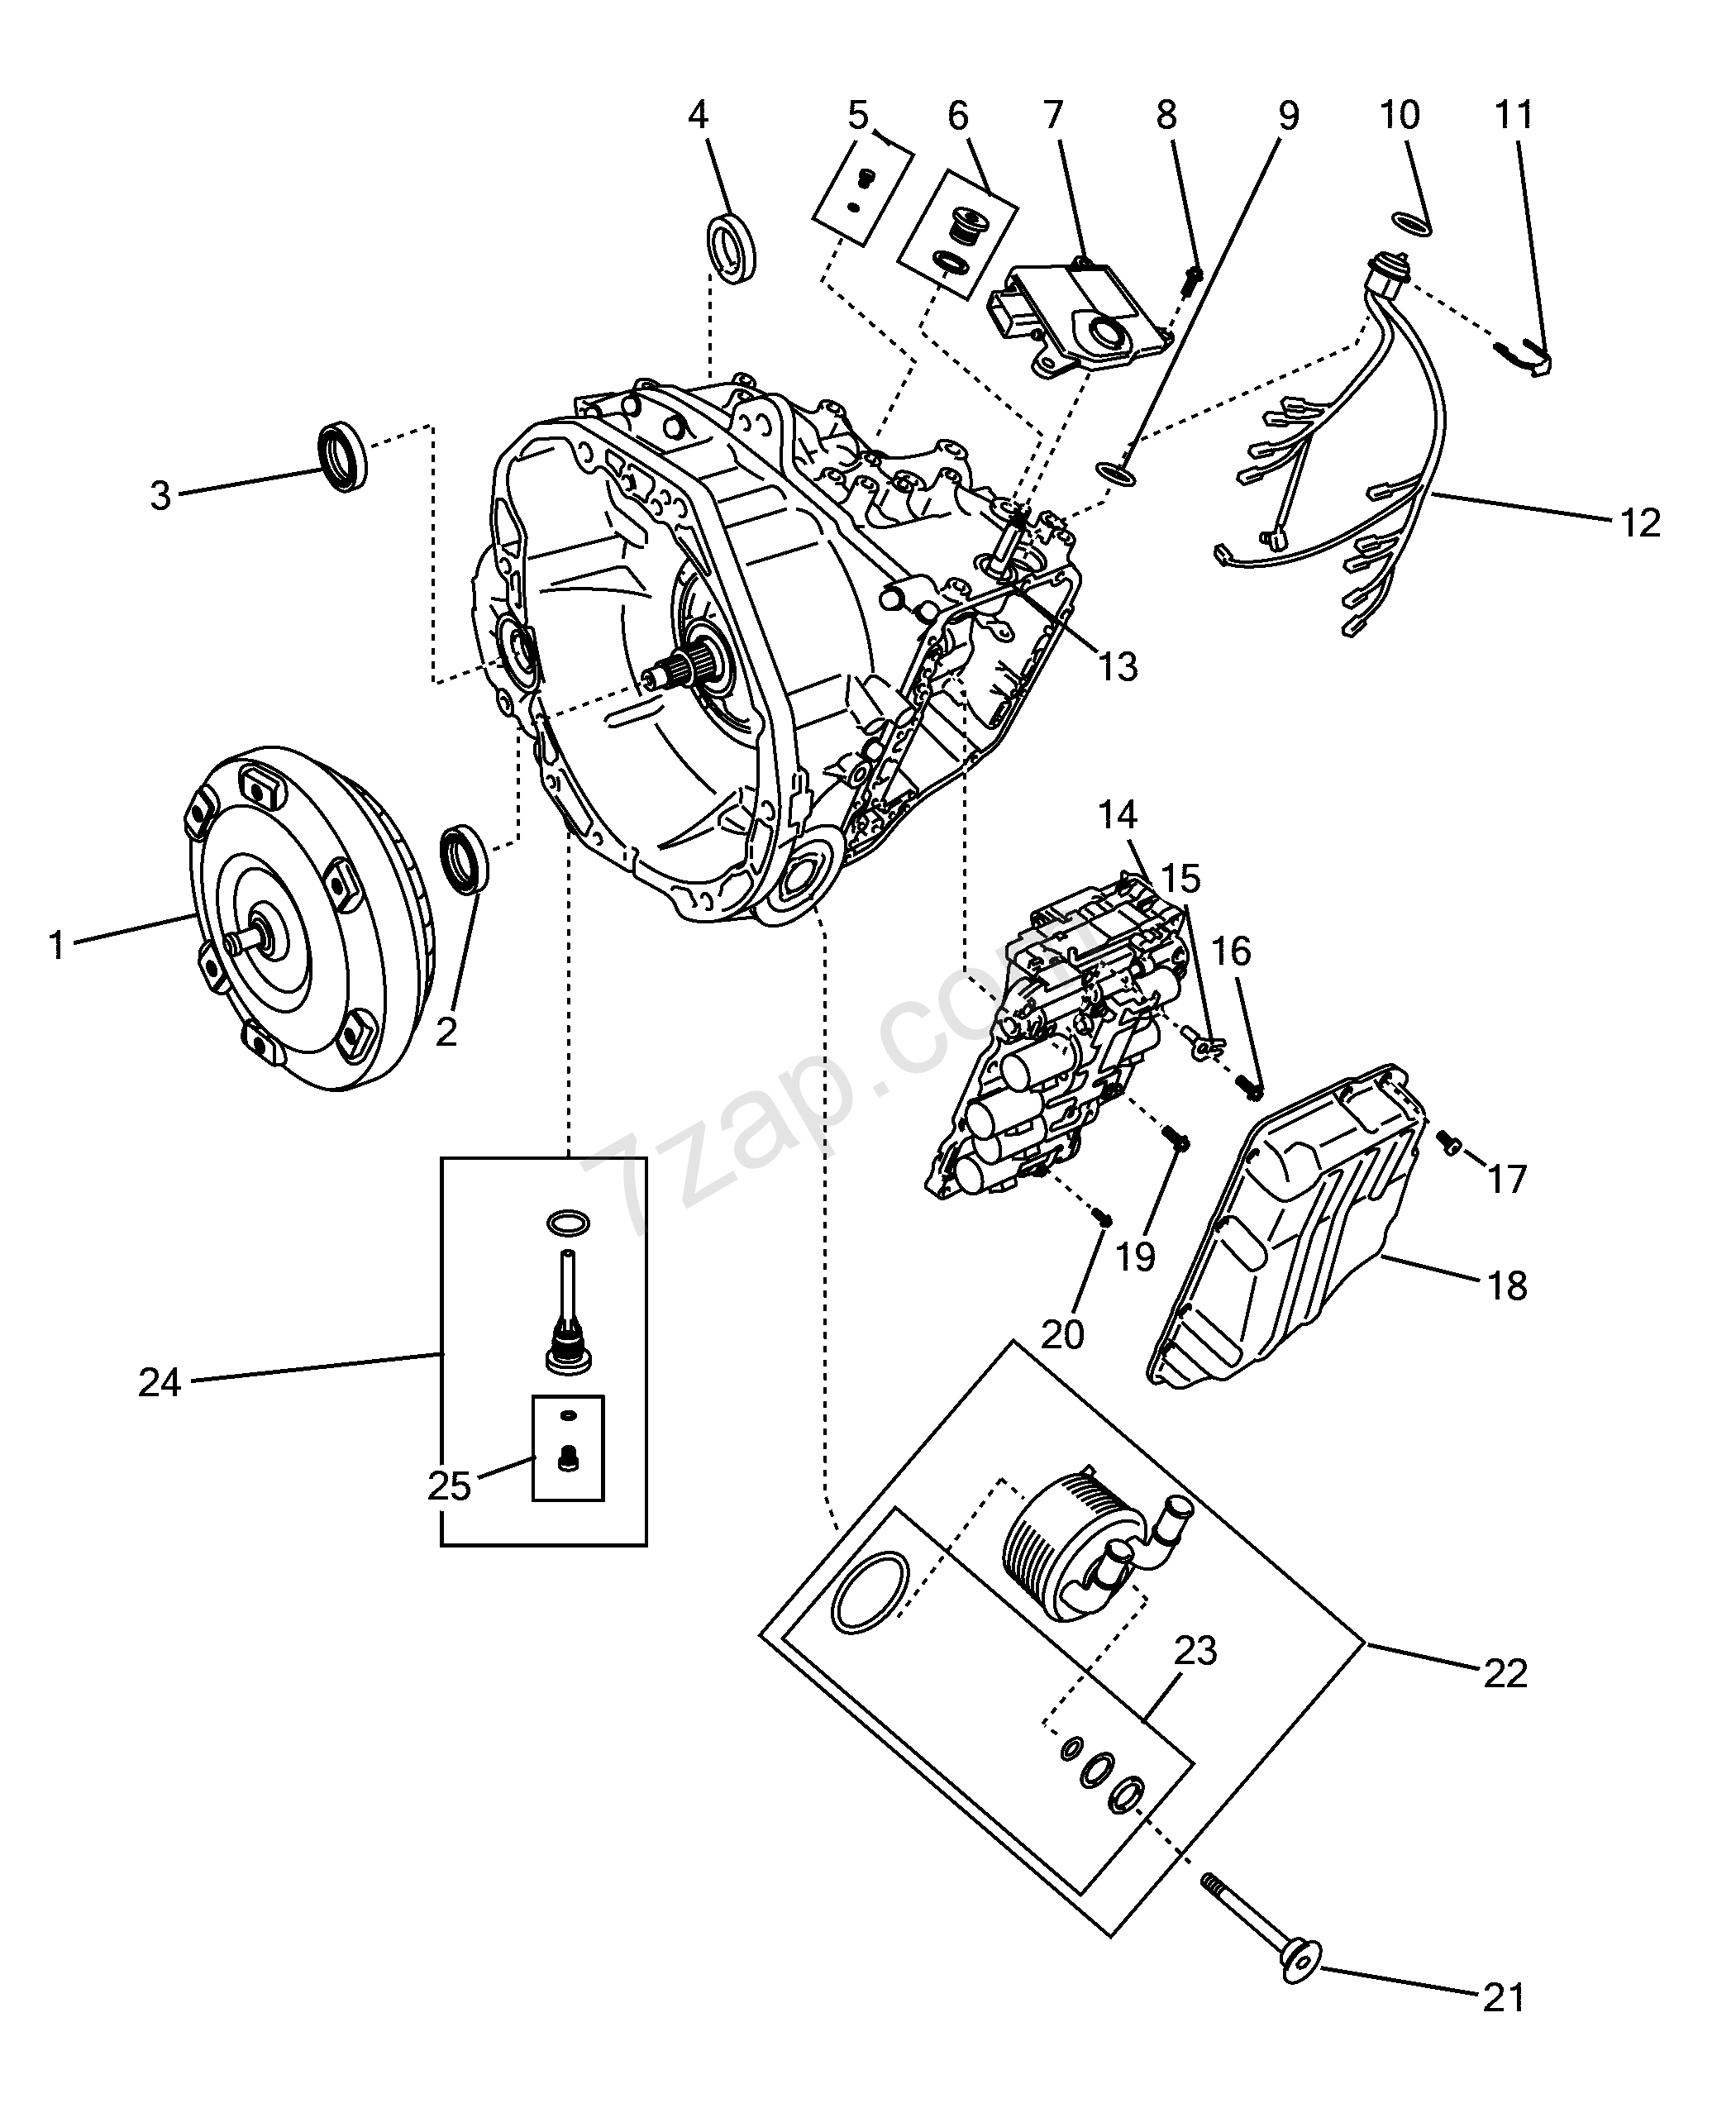 fiat 500 parts diagram  u2022 wiring diagram for free